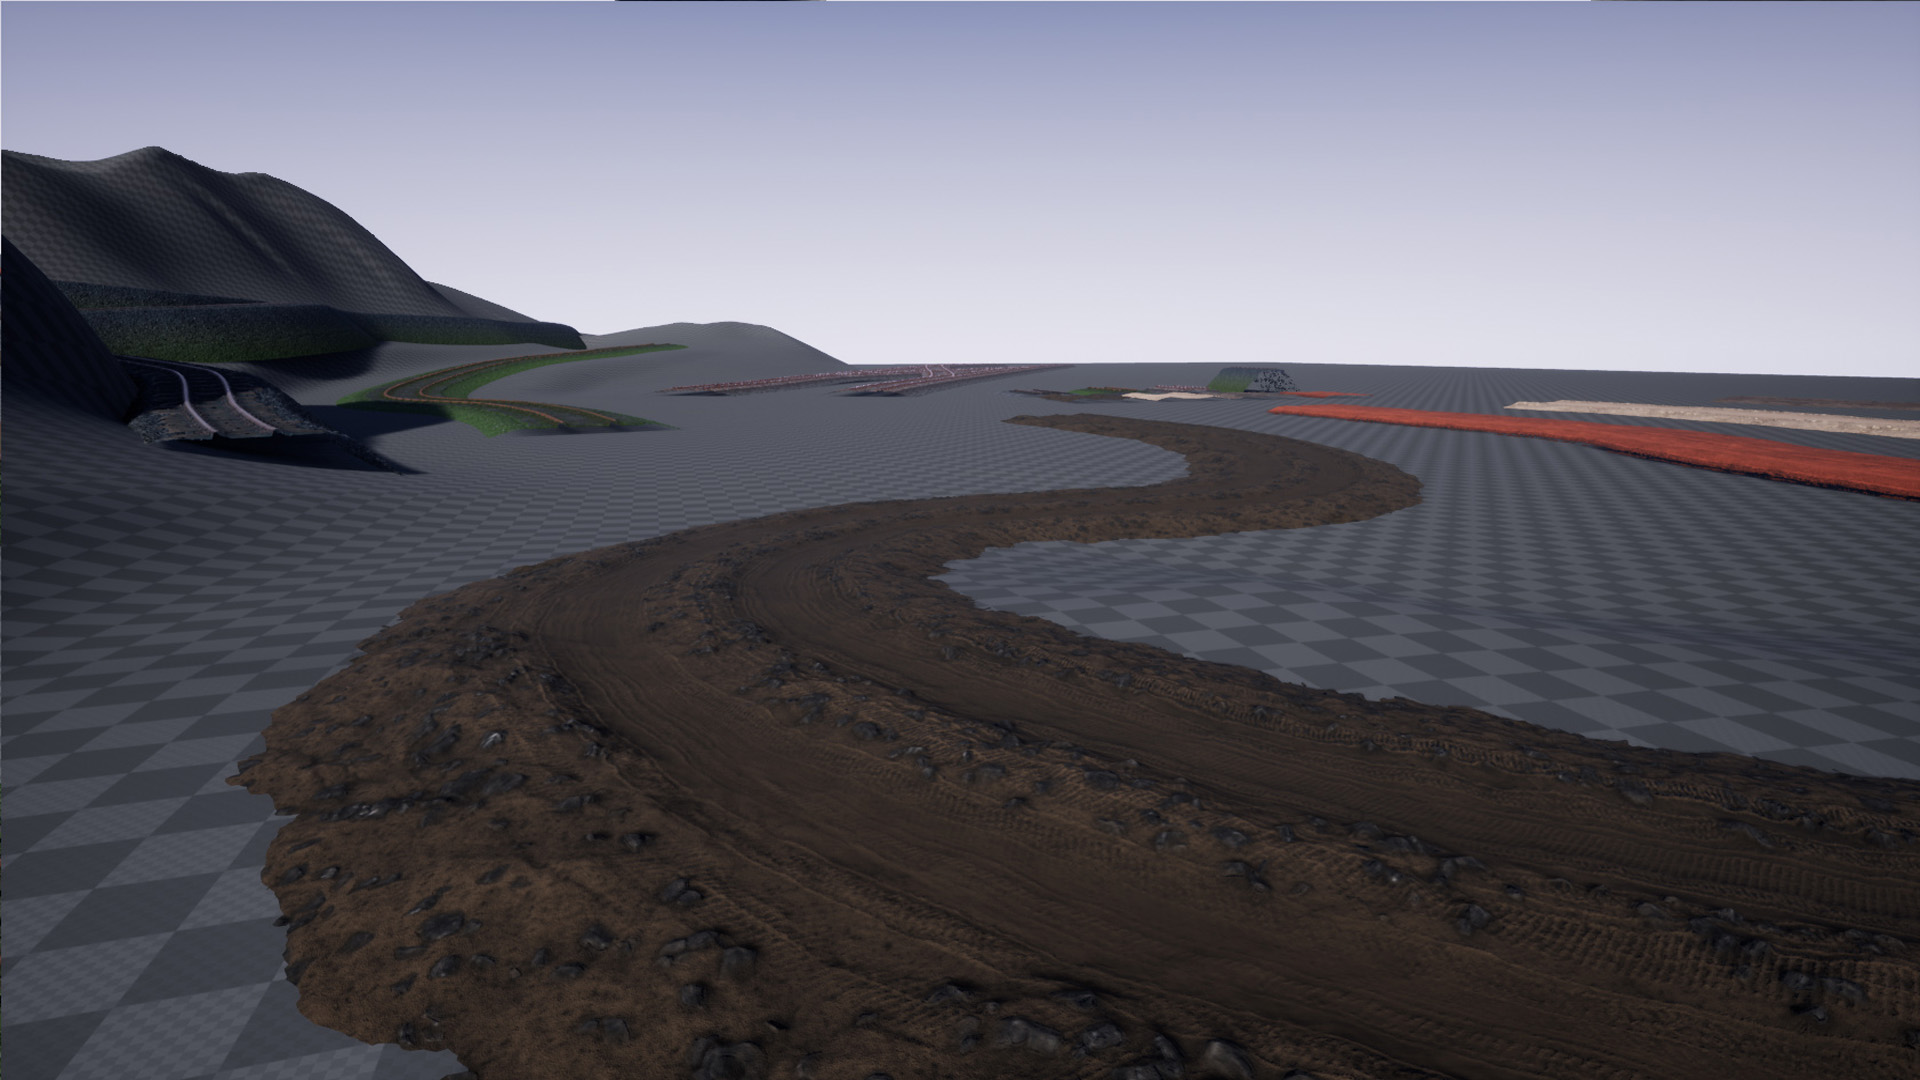 Tracks n Paths by Peter Severud in Materials - UE4 Marketplace